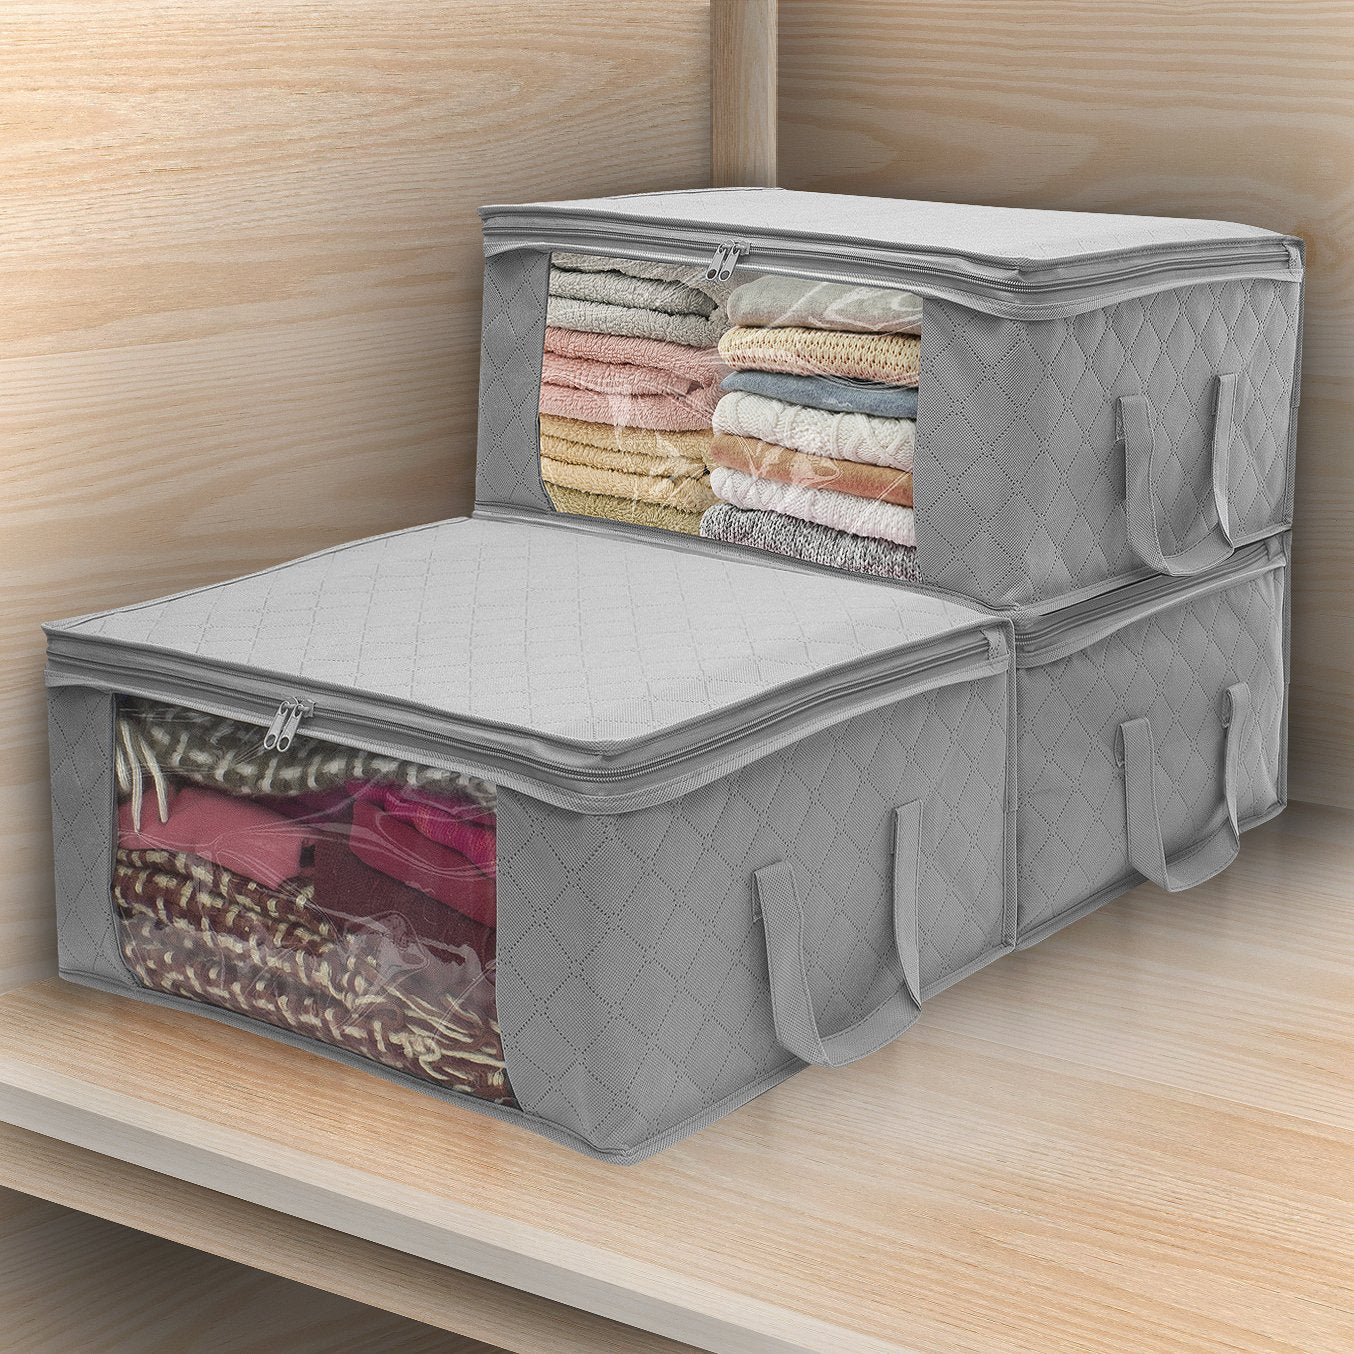 HomeFX Foldable Storage Bag Organizers - 3 Piece | Monthly Madness